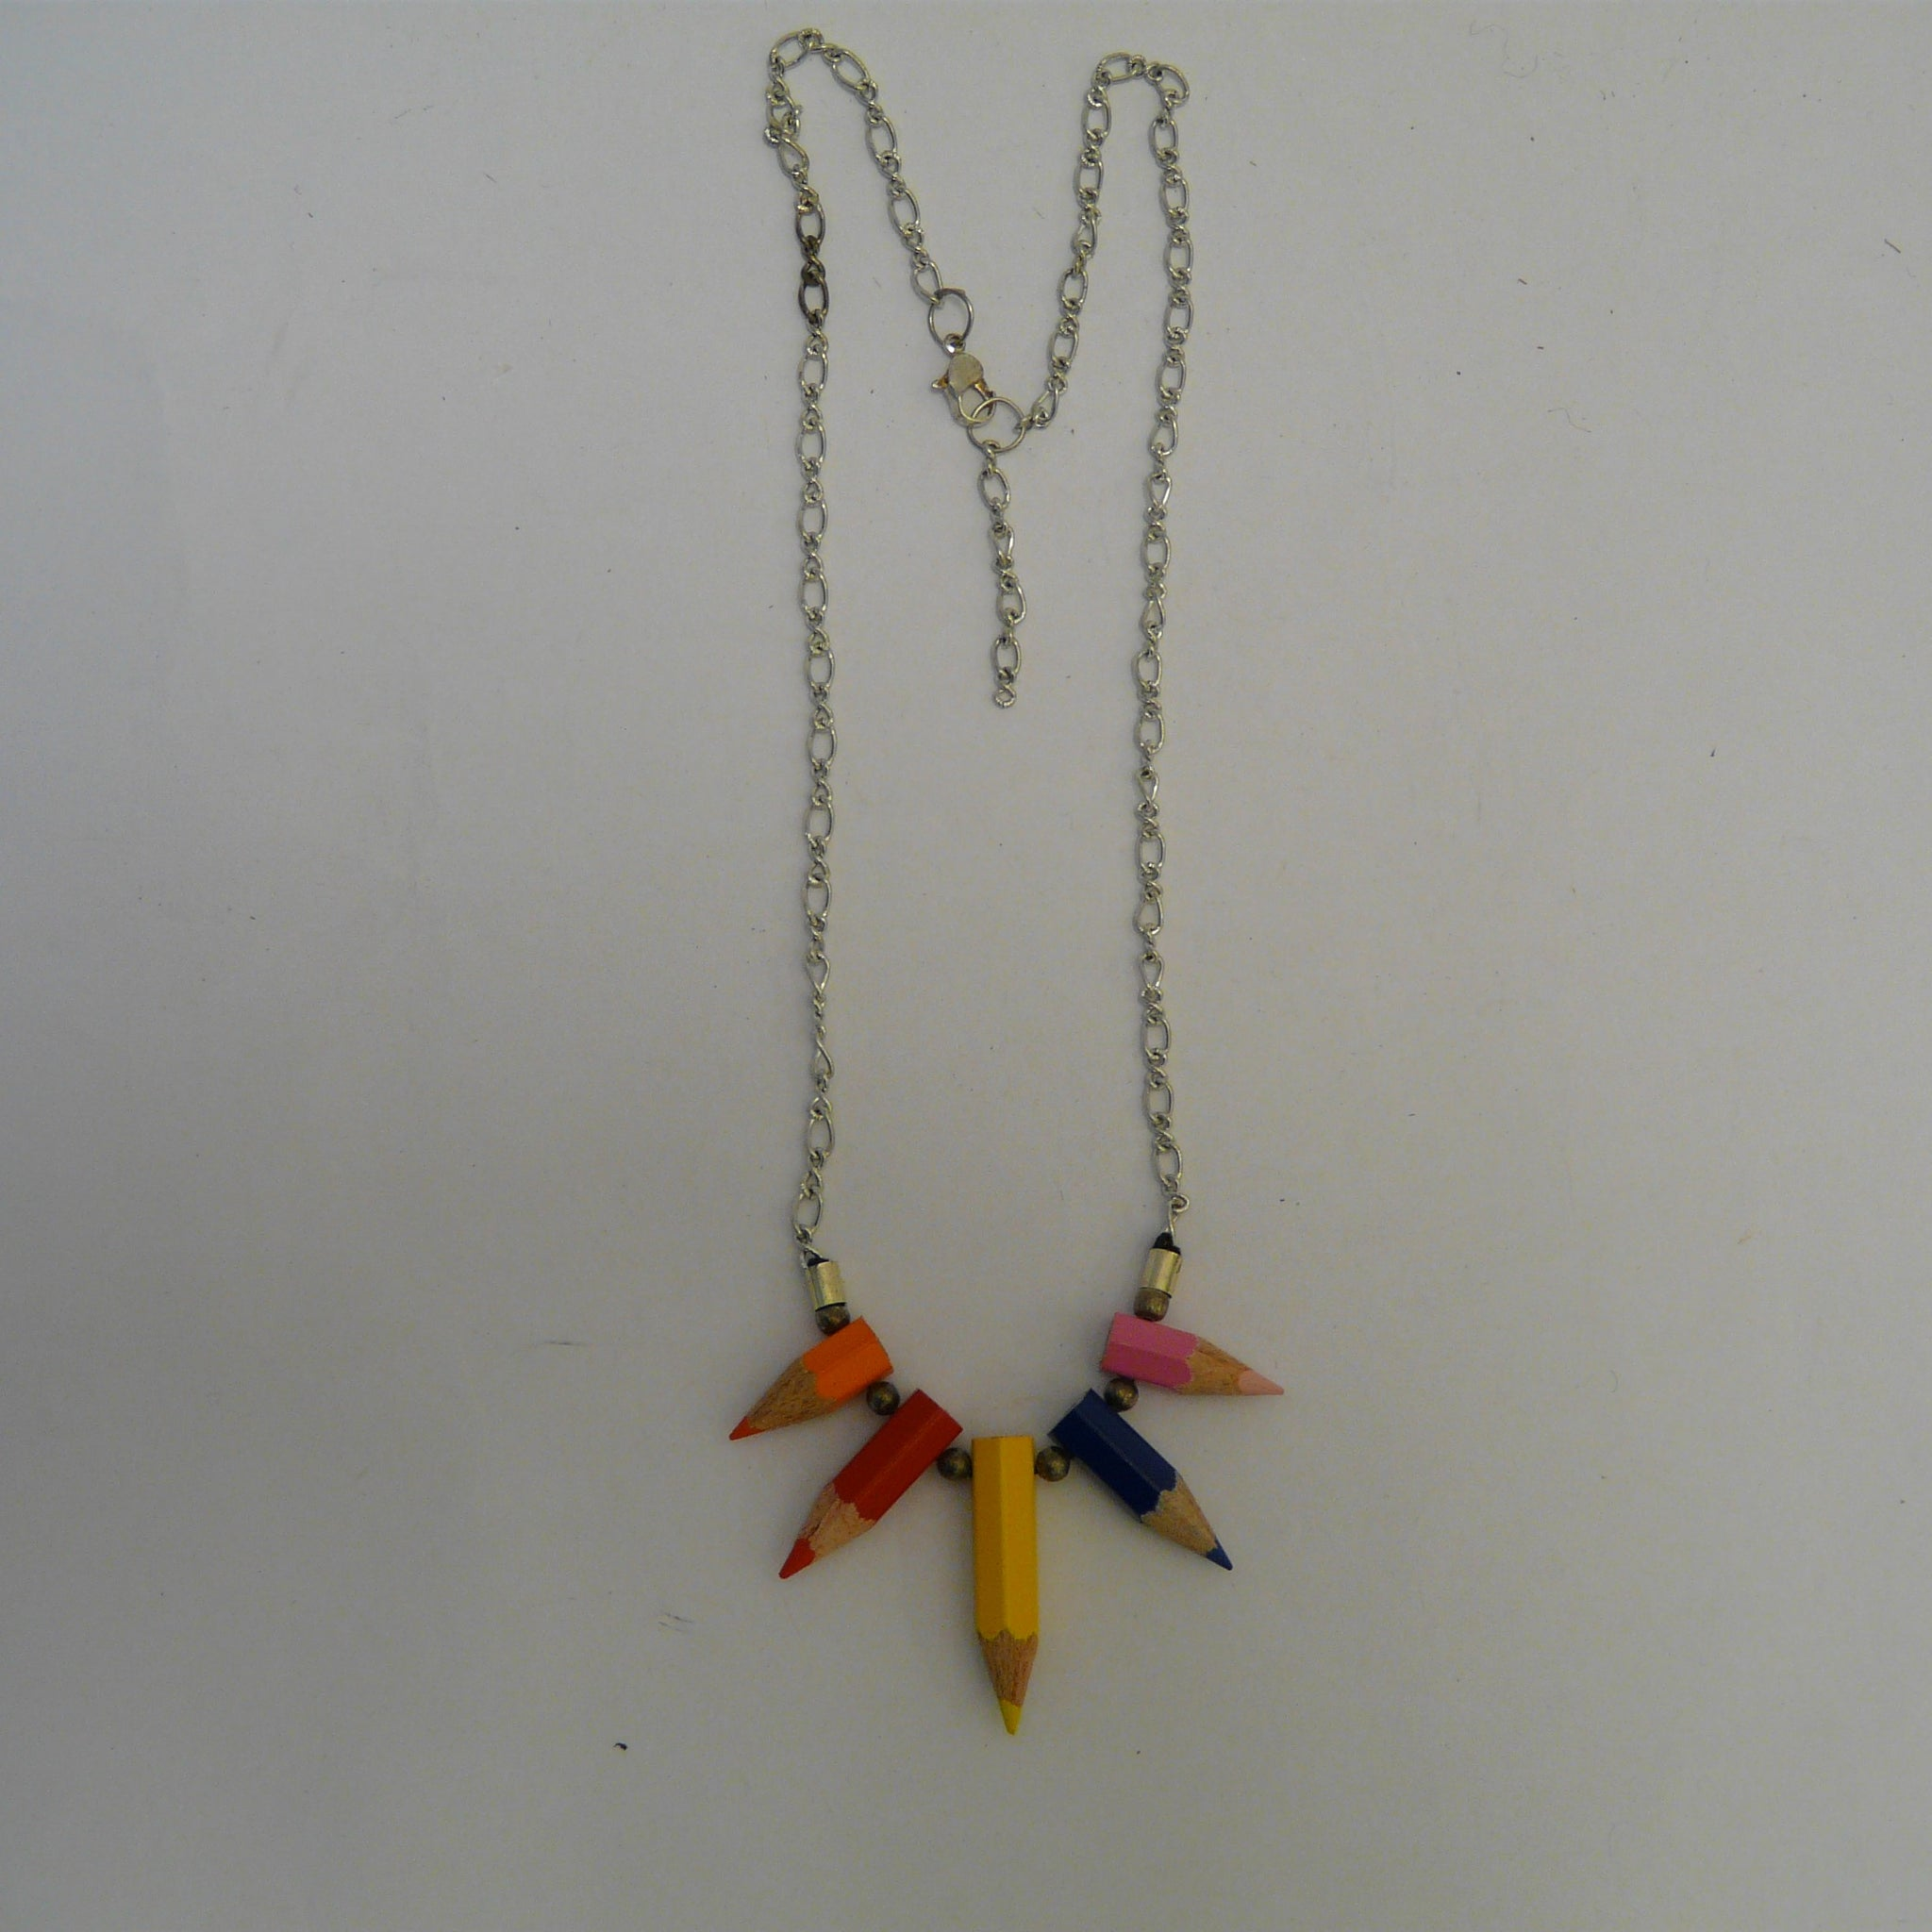 P1110476-fair-trade-upcycled-crayons-5-stubs-necklace-showing-chain-with-extension